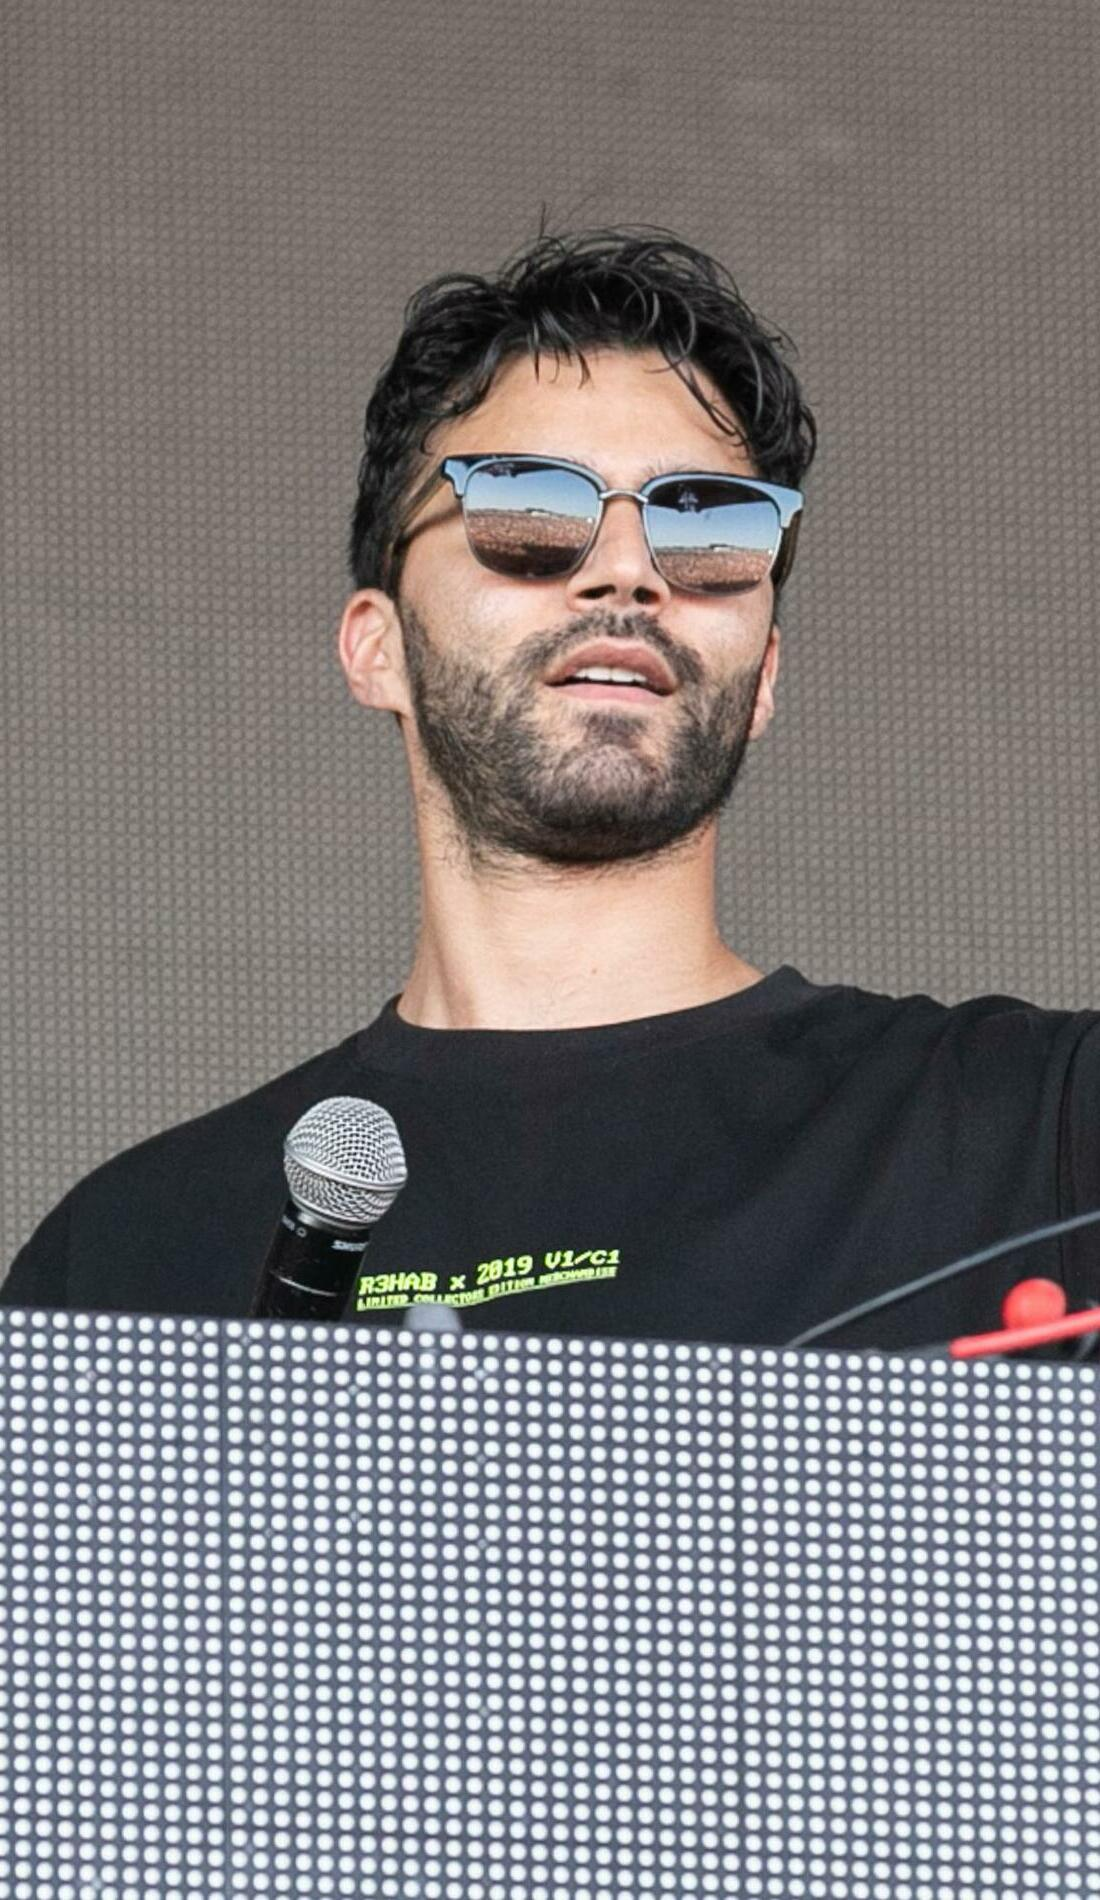 A R3hab live event